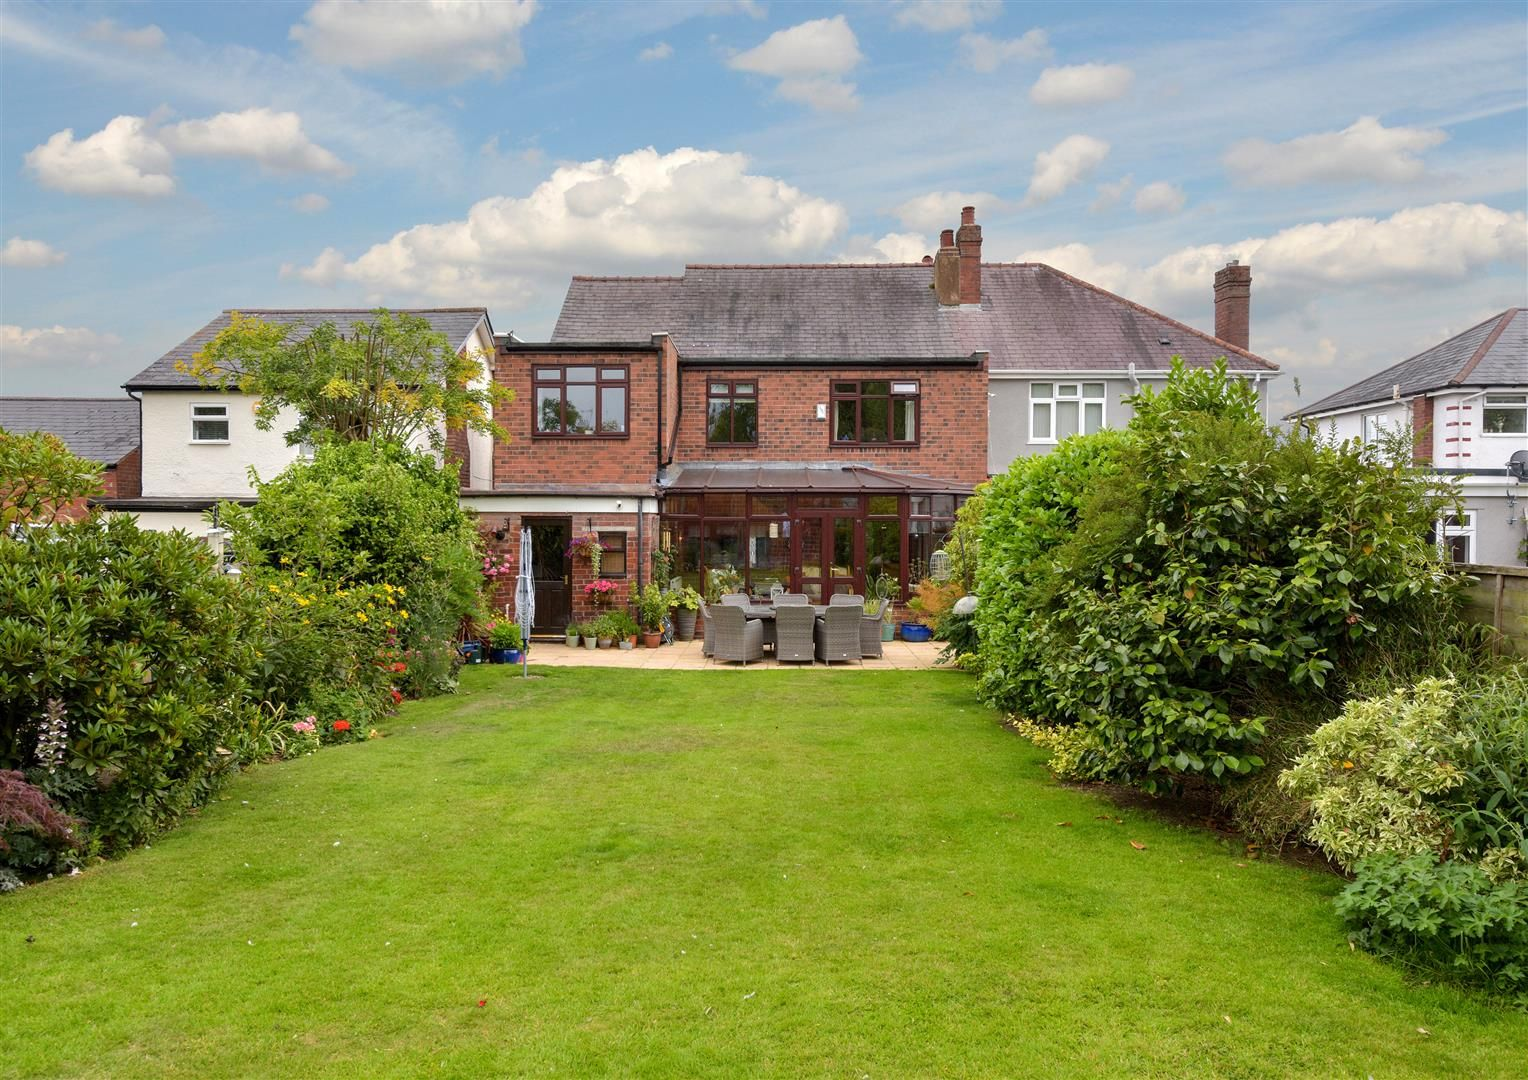 5 bed semi-detached for sale 27